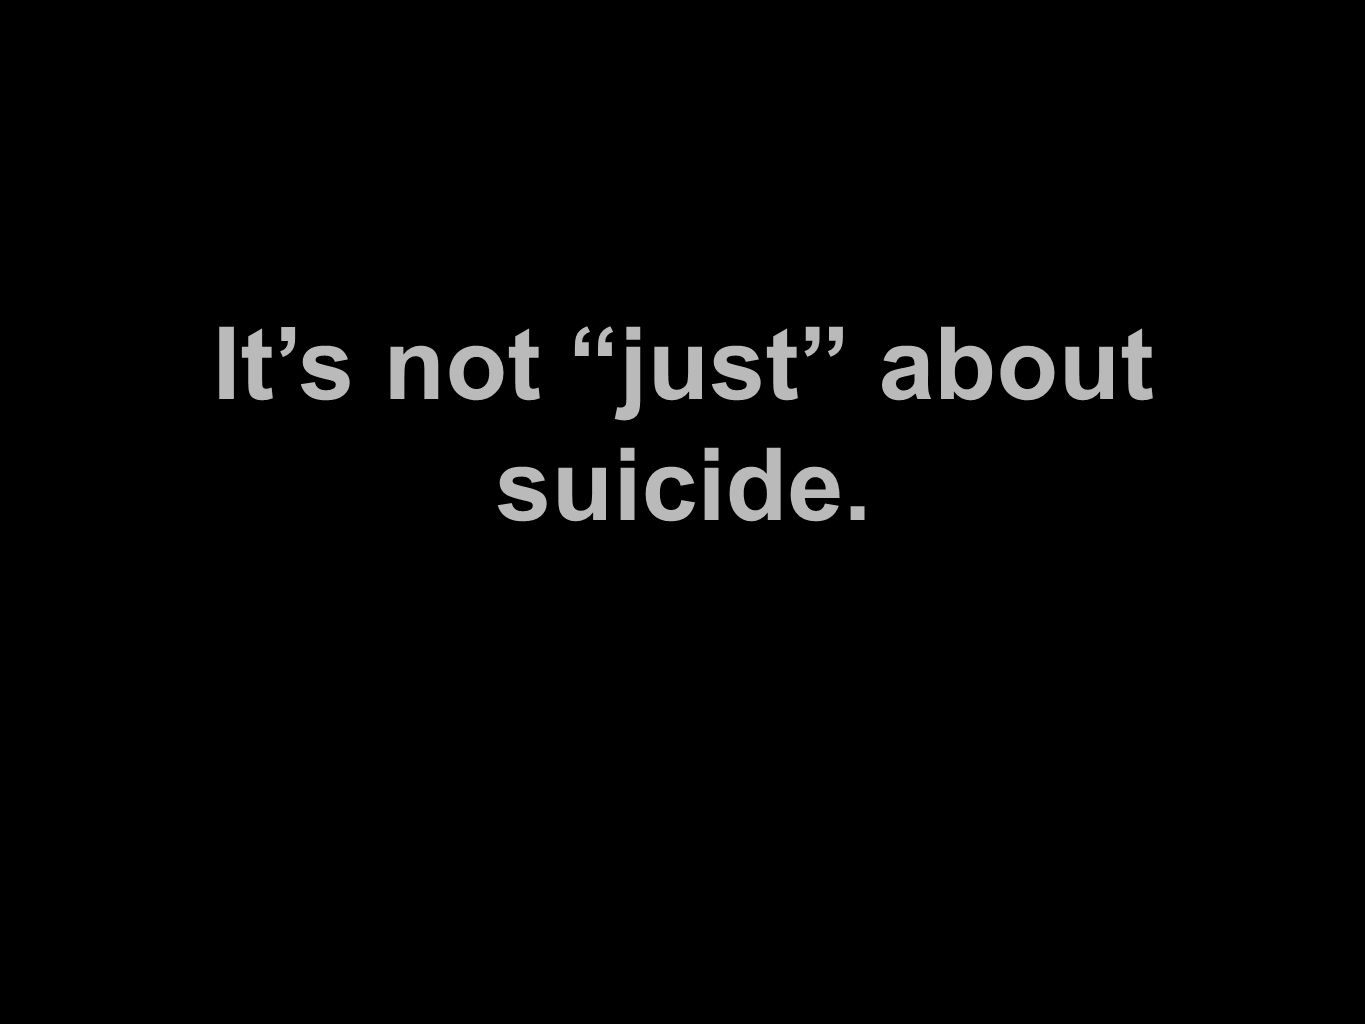 It's not just about suicide.